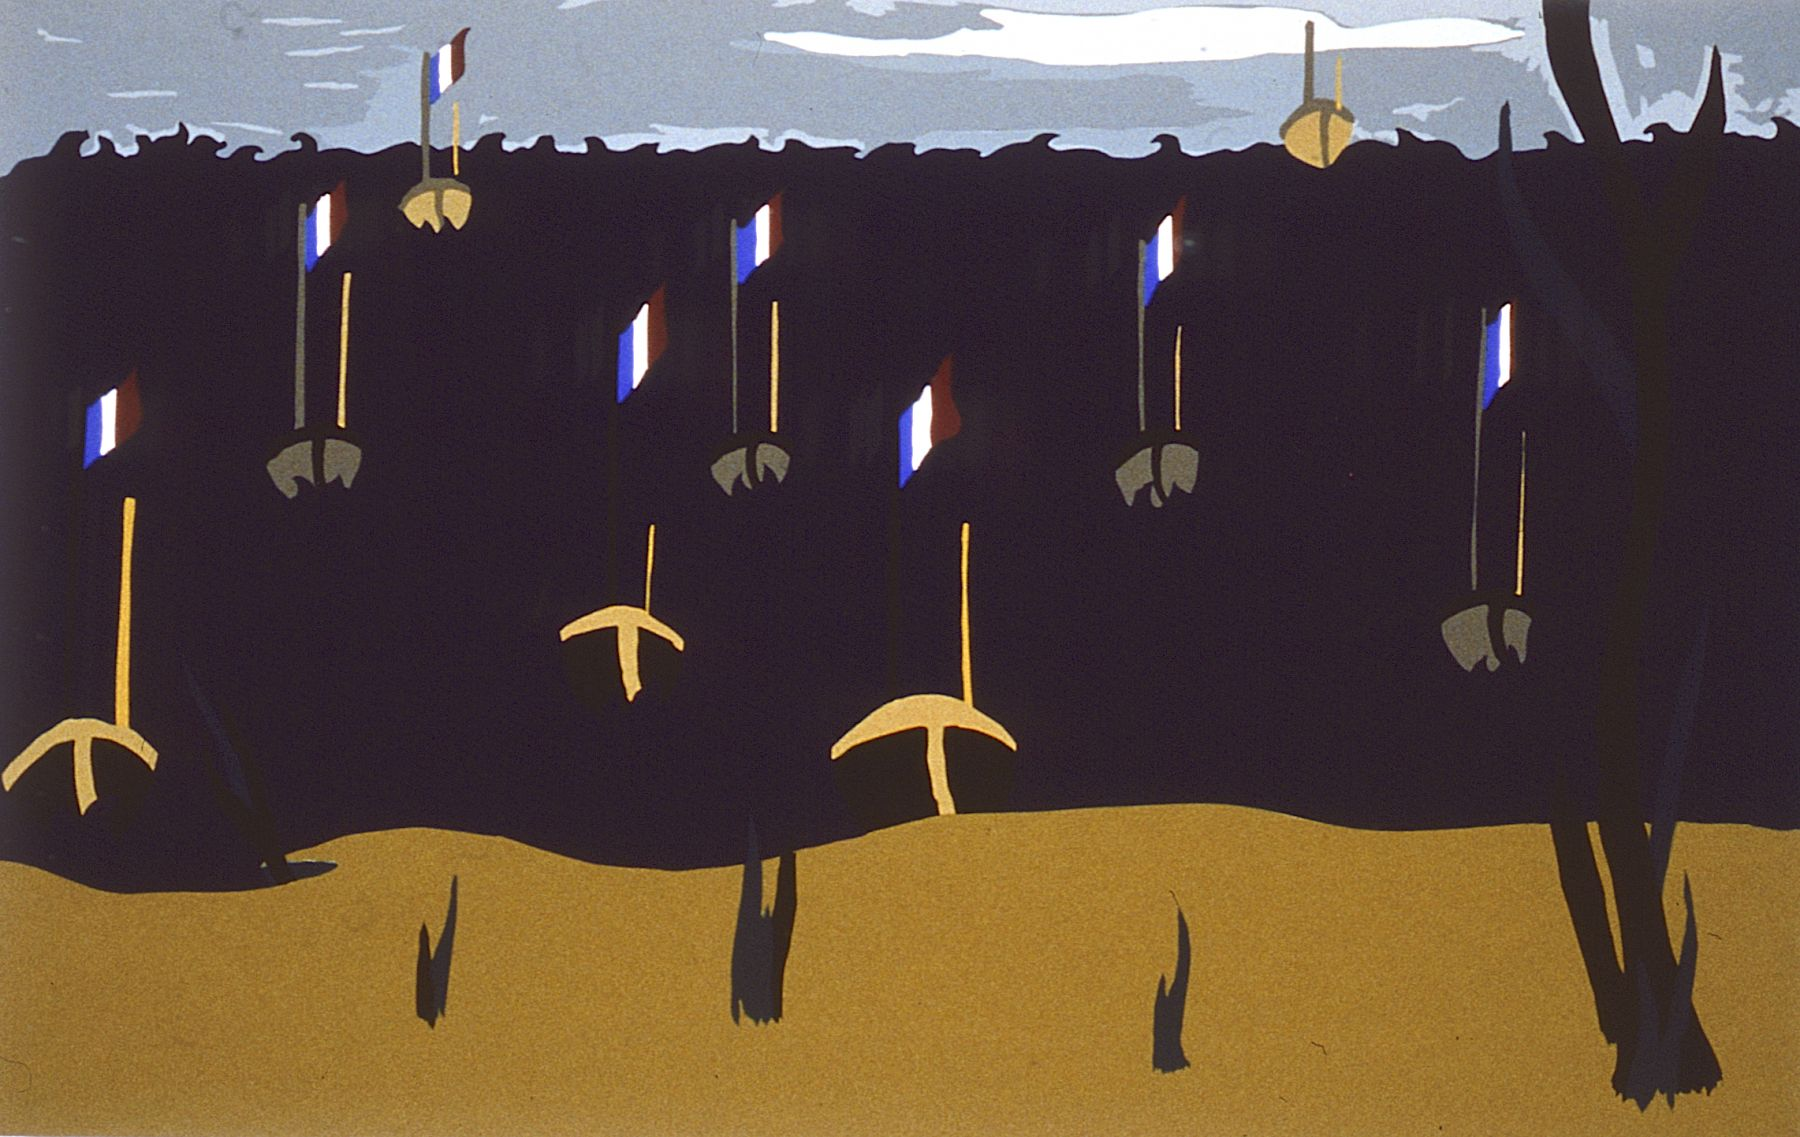 Flotilla, 1996 Silk screen on paper